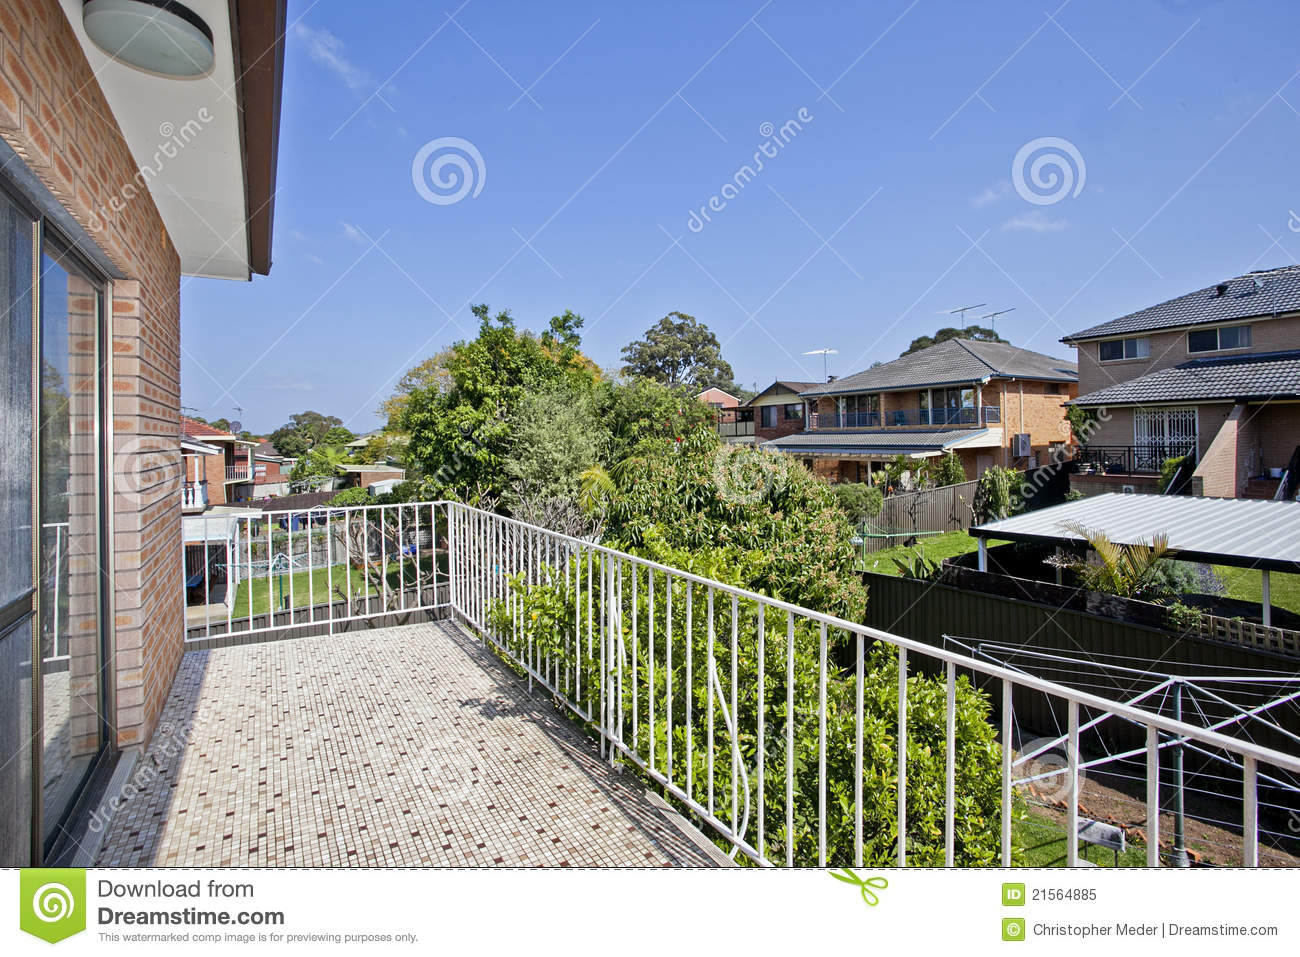 Balcony with a view royalty free stock photo image 21564885 for Balcony with view